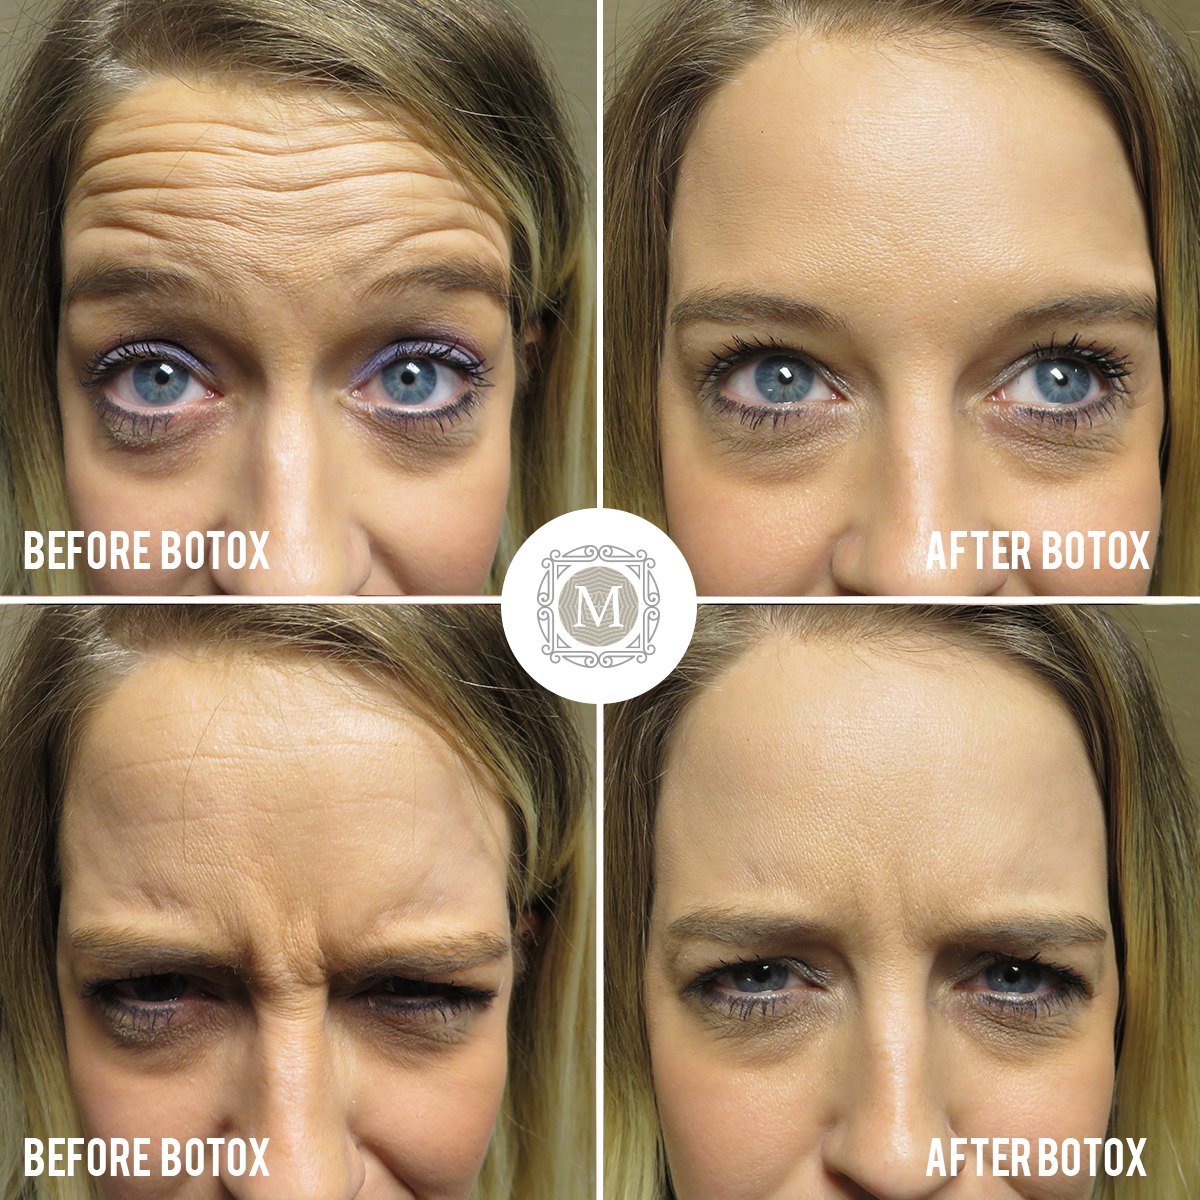 This Patient Had 20 Units Of Botox For Forehead Wrinkles Frown